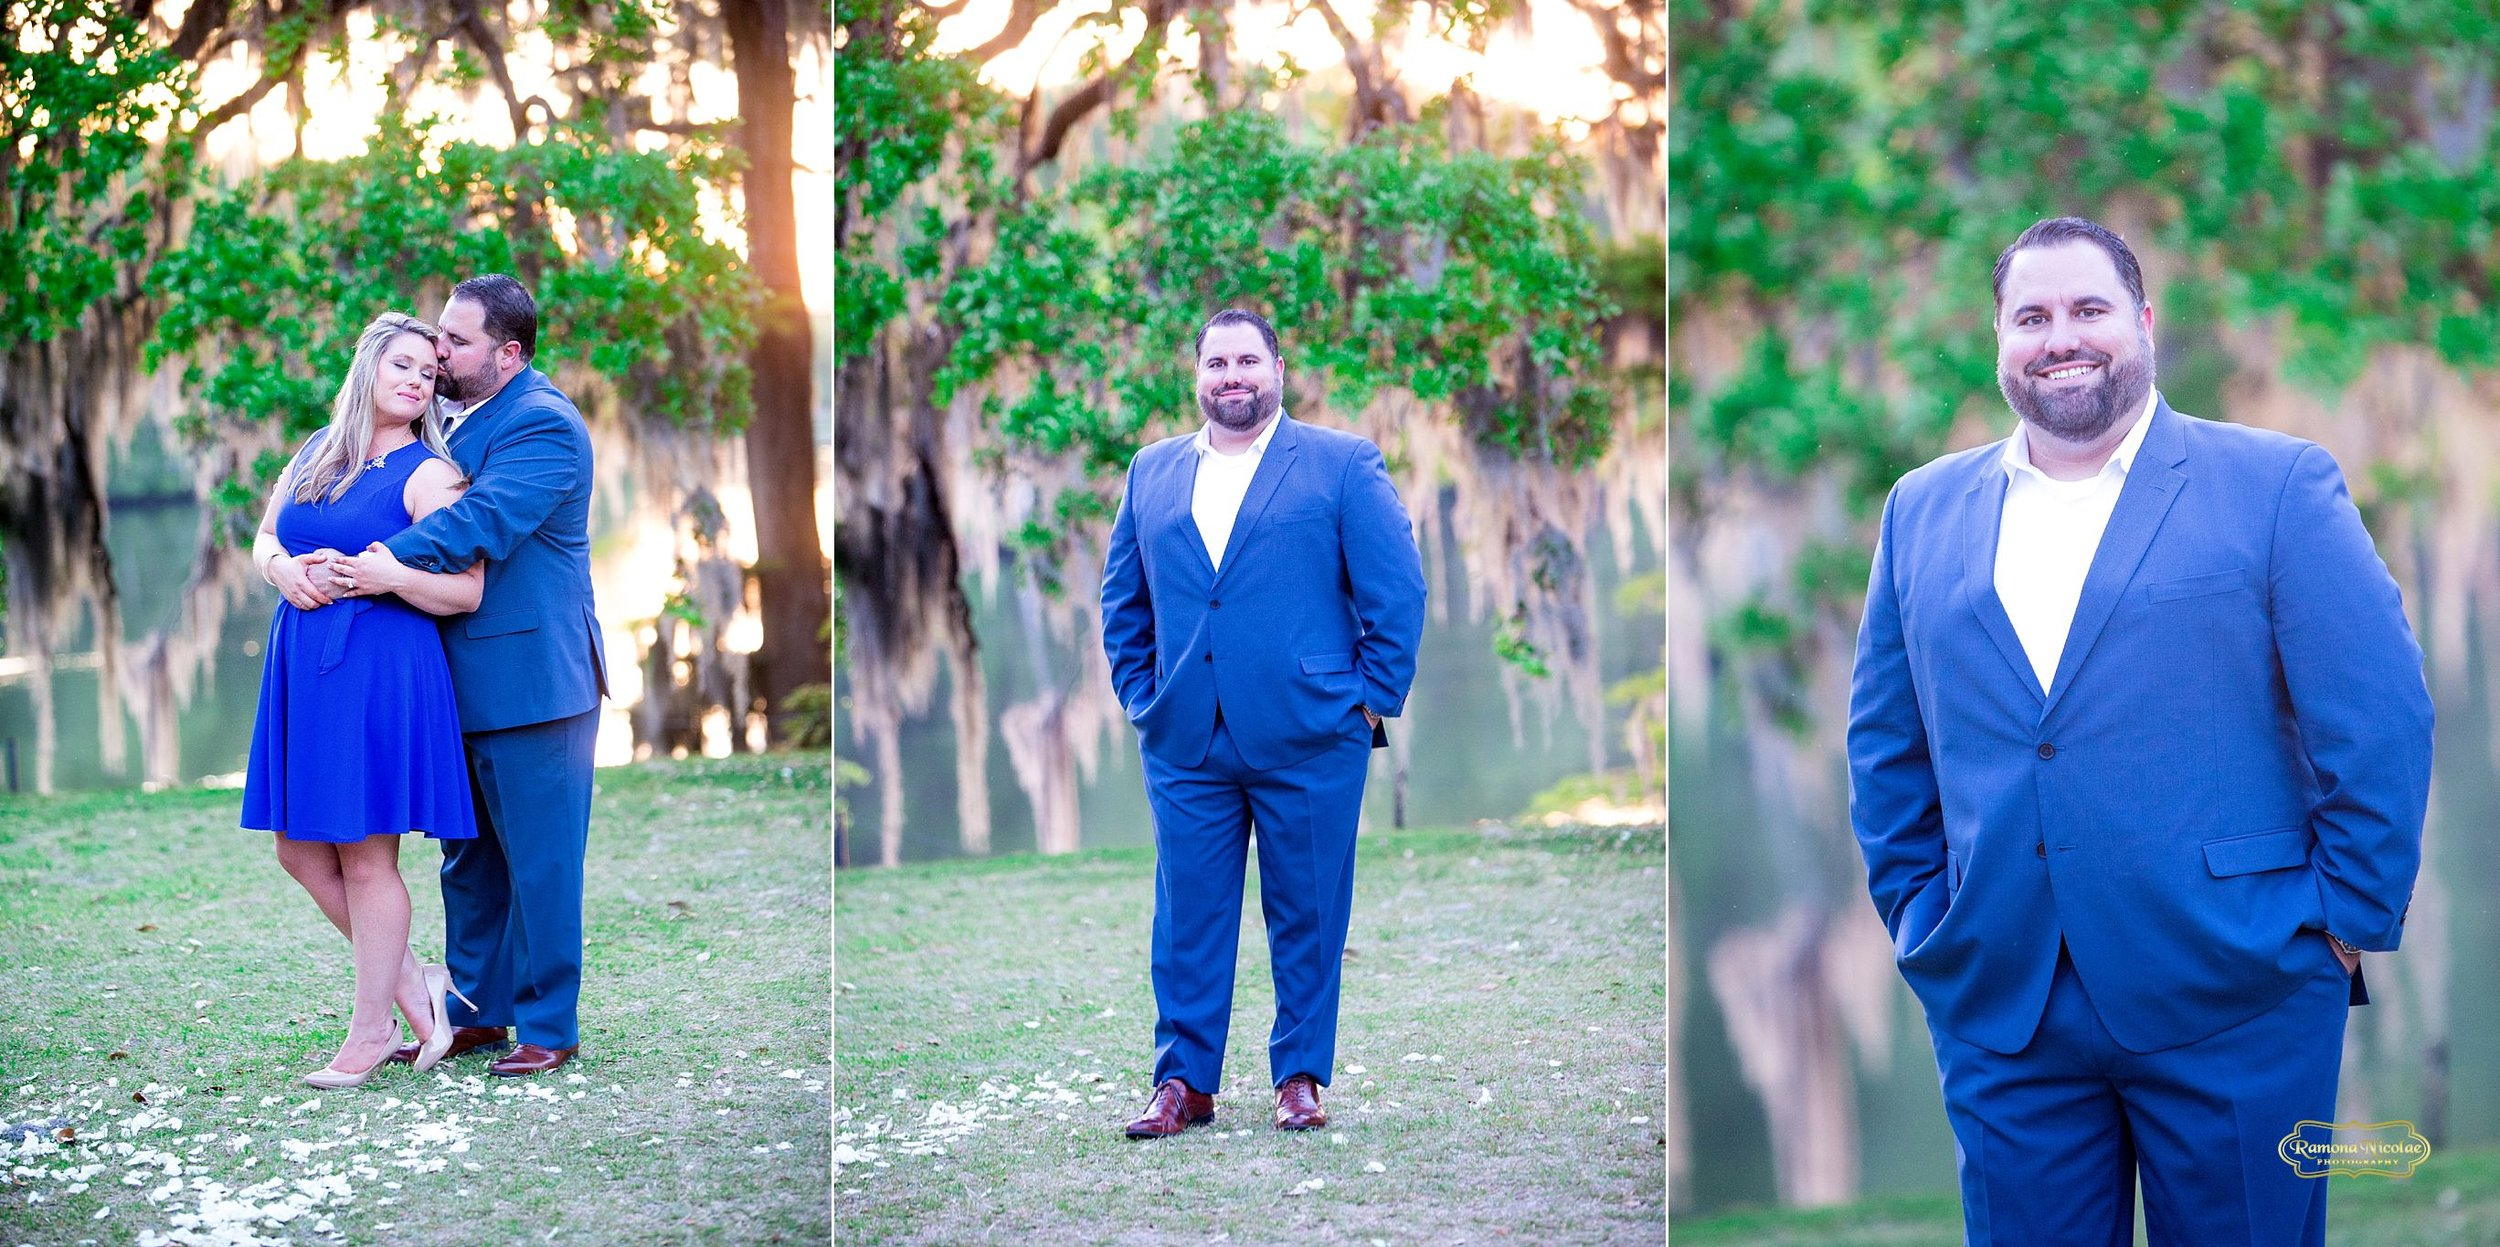 wachesaw plantation engagement shoot couple in greenery dressed in blue .jpg